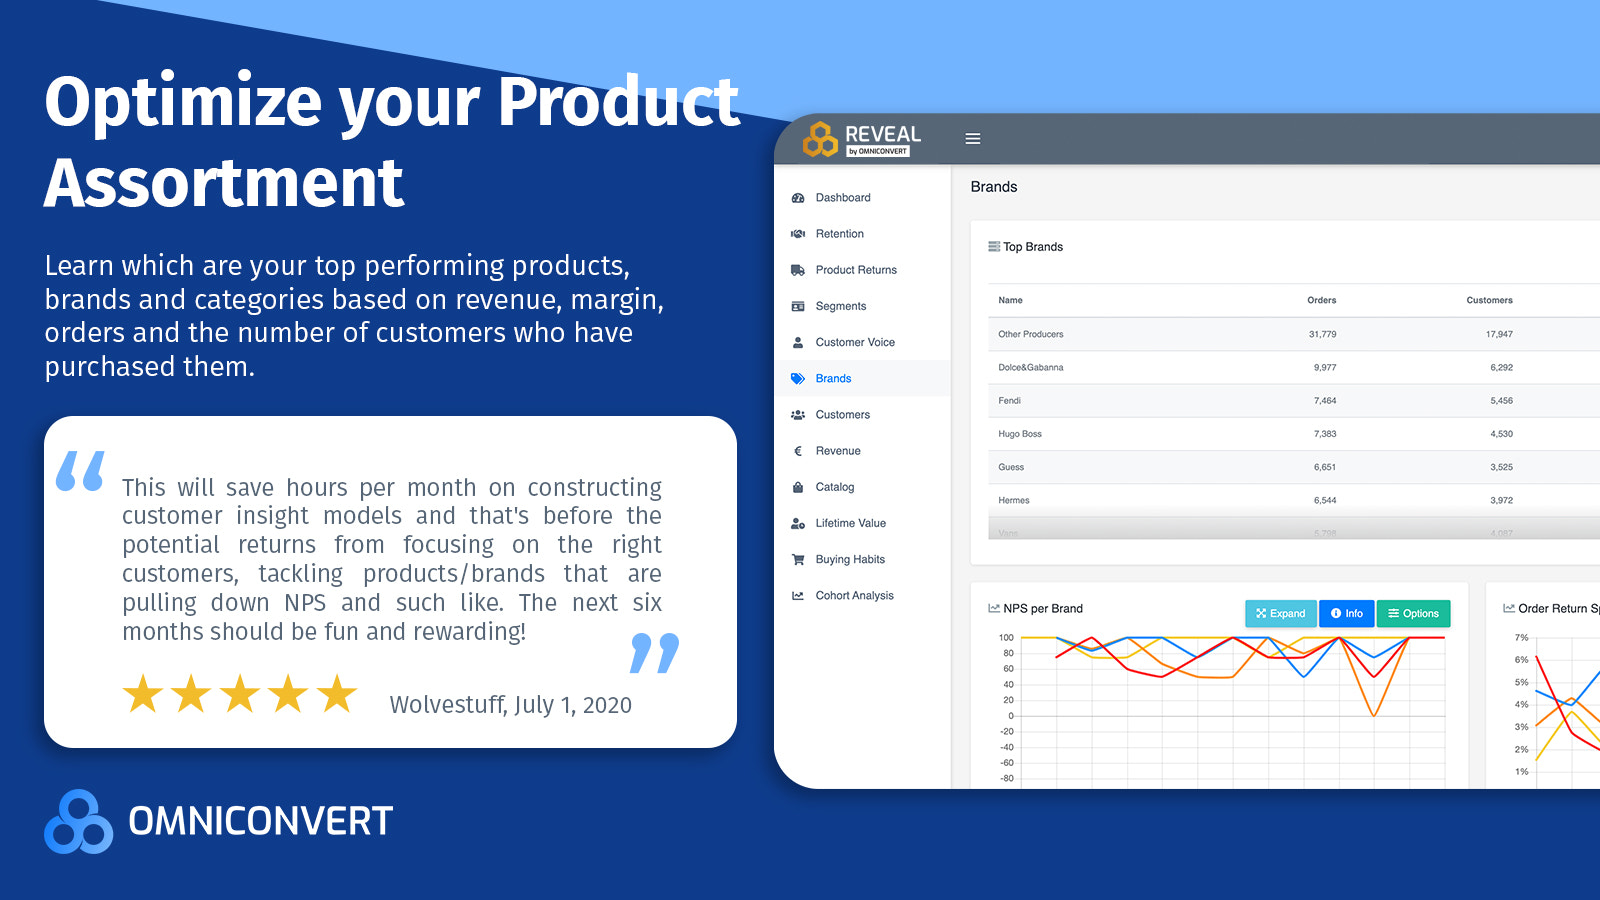 Reveal - Optimize your Product Assortment